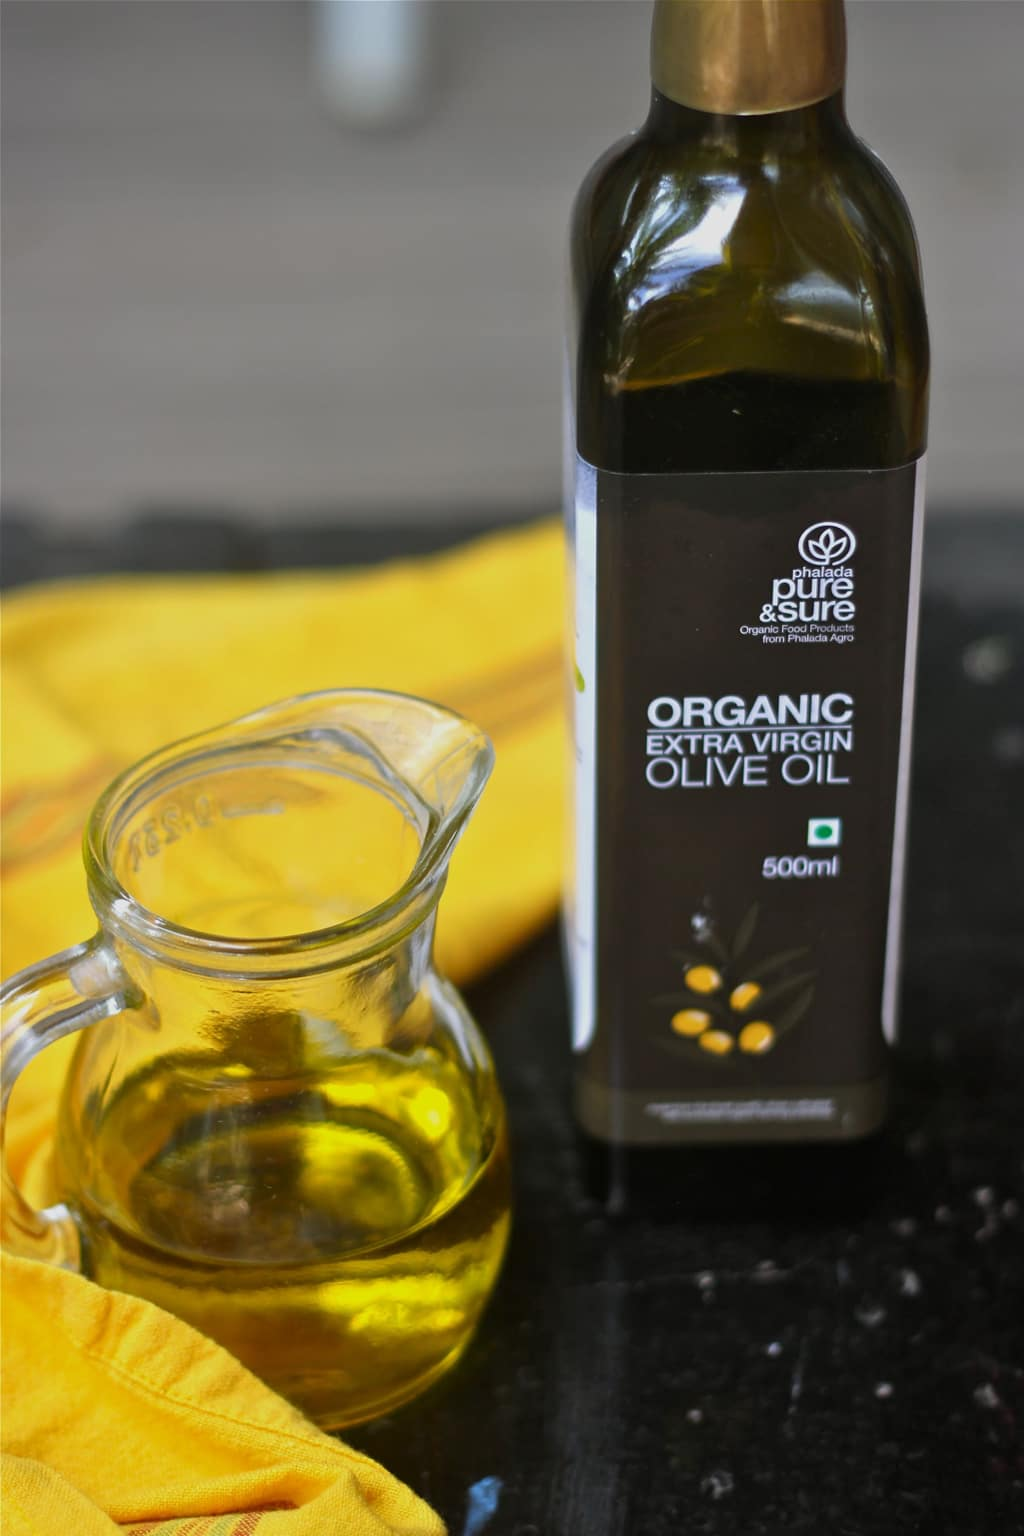 7 ways to use organic extra virgin olive oil - health